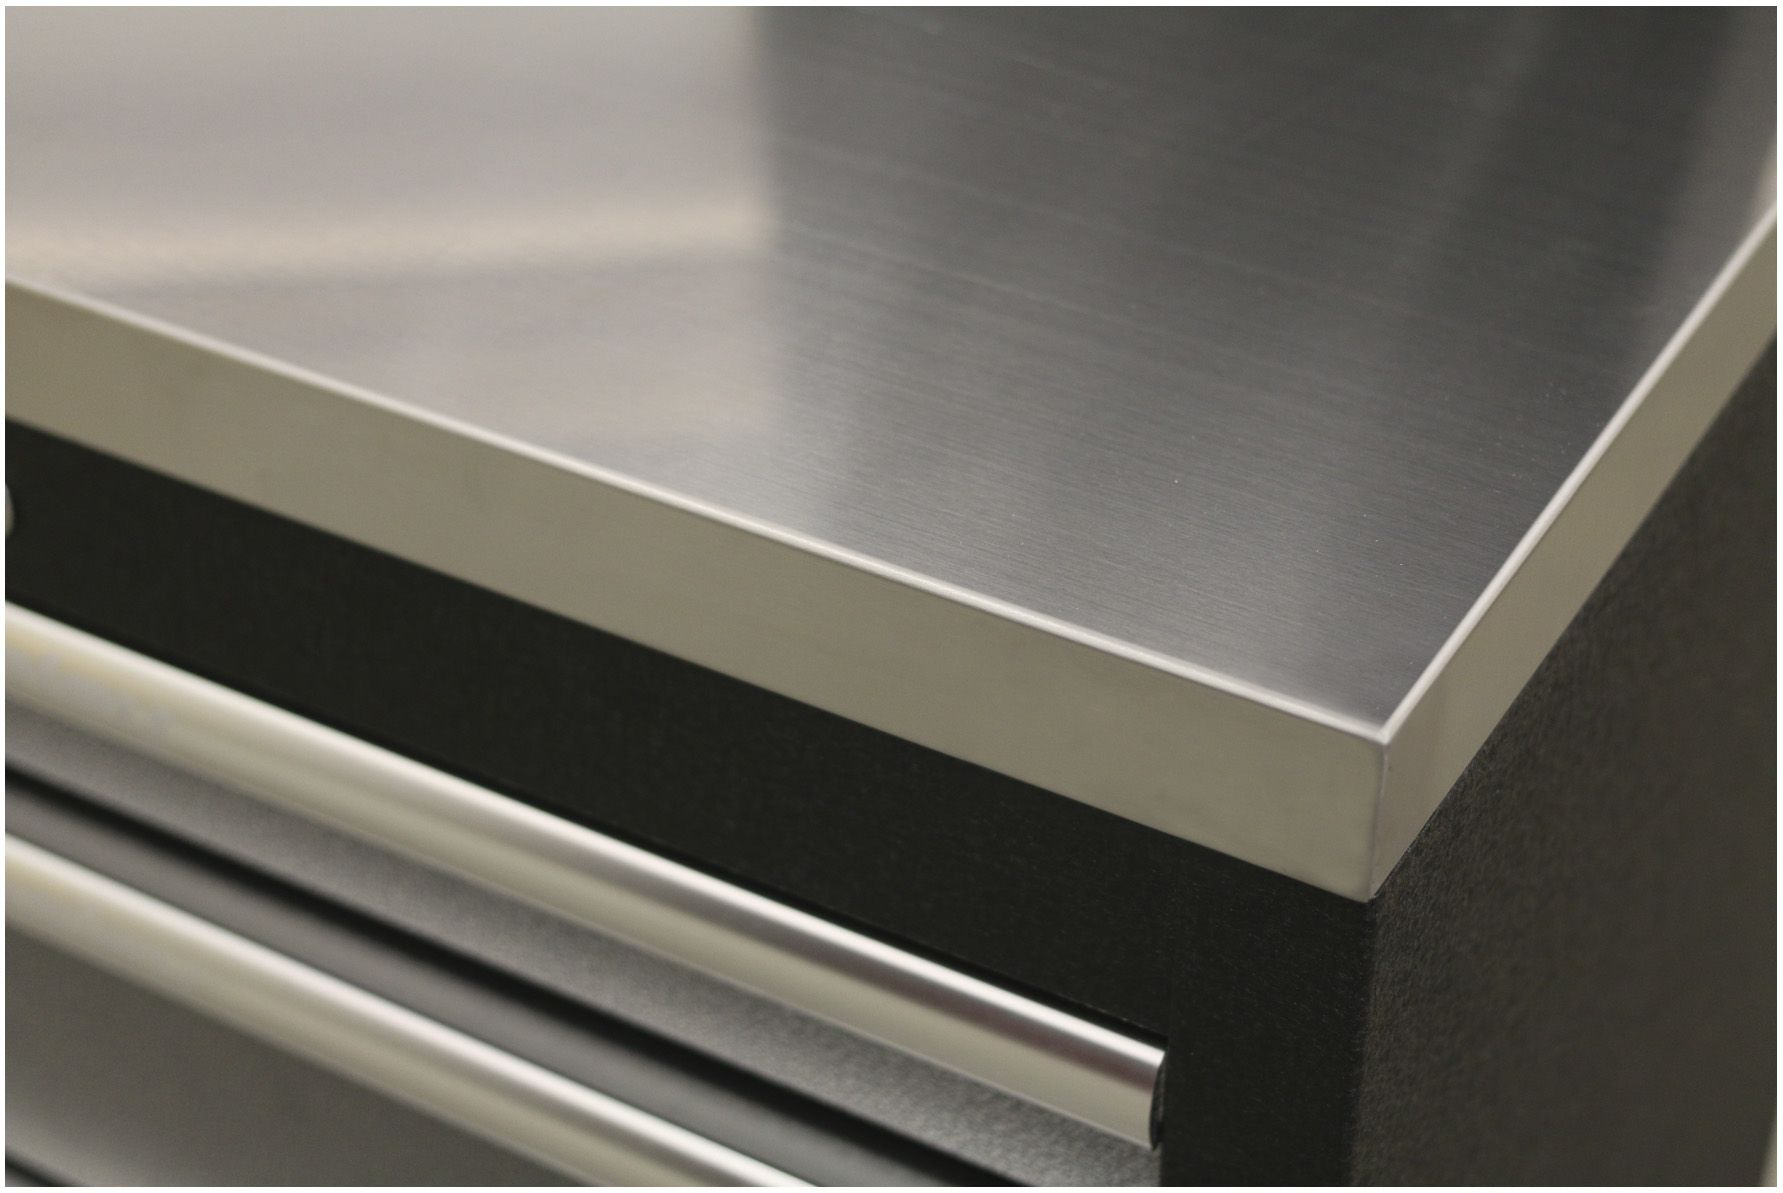 Sealey Superline Pro Stainless Steel Worktop 2040mm